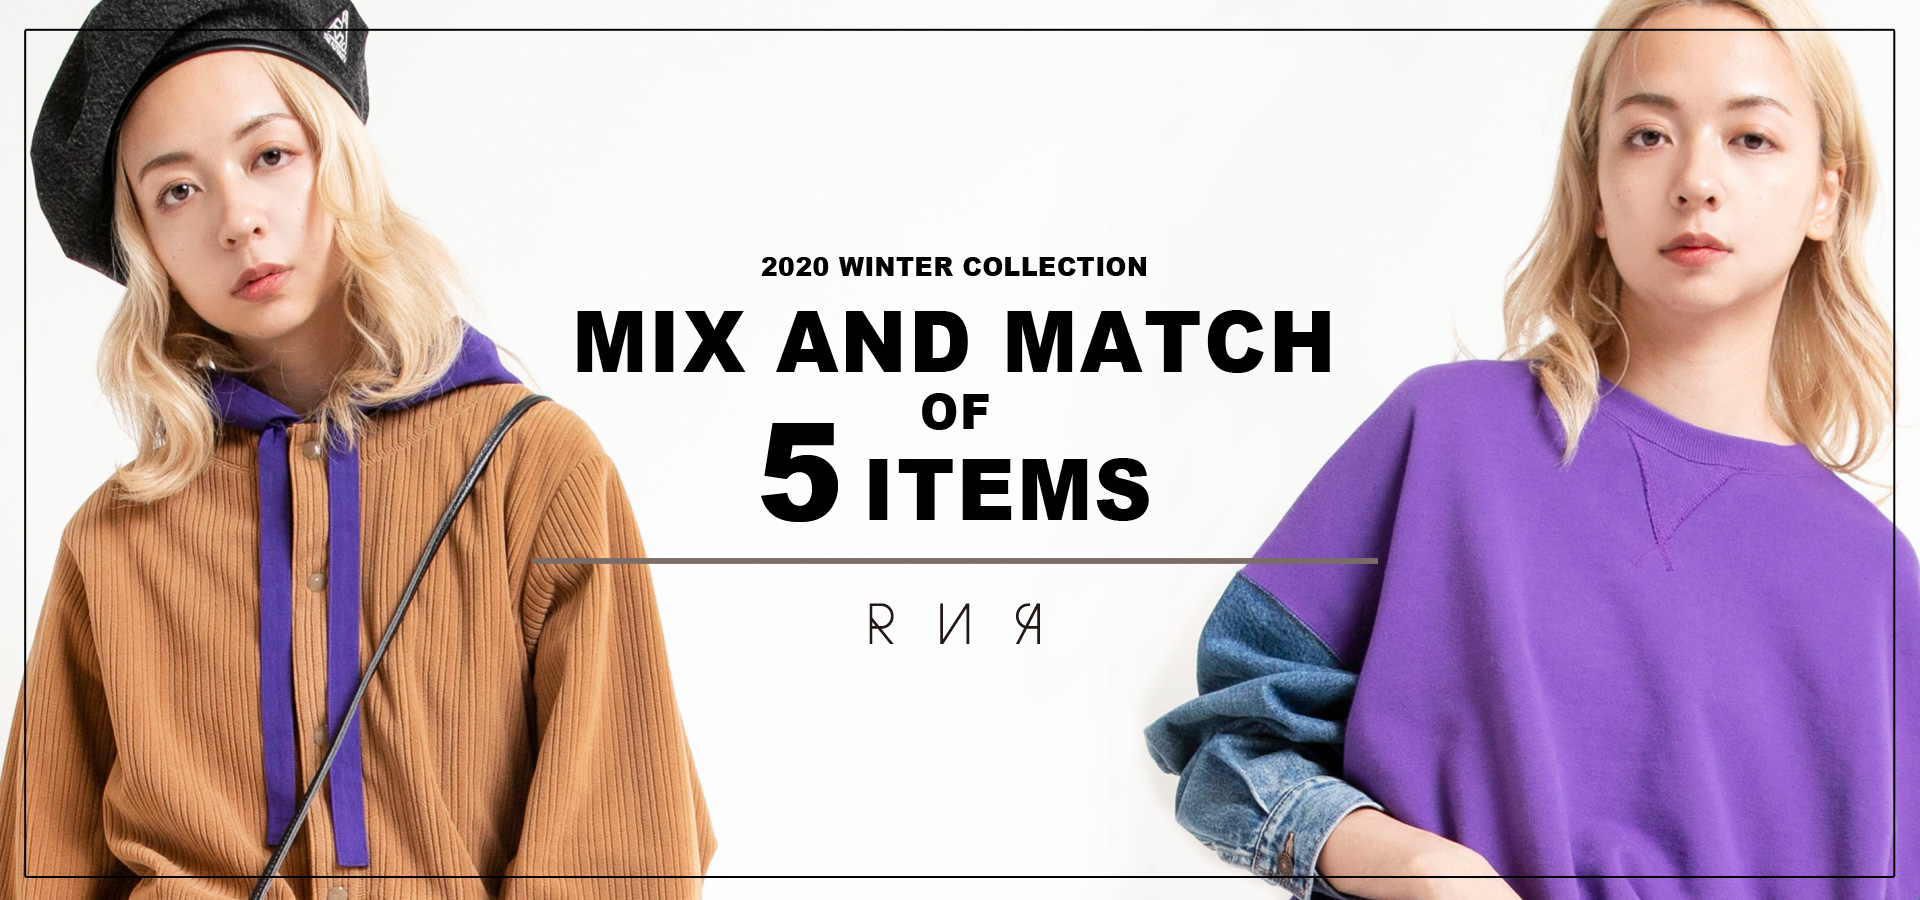 RNA MIX AND MATCH OF 5ITEMS